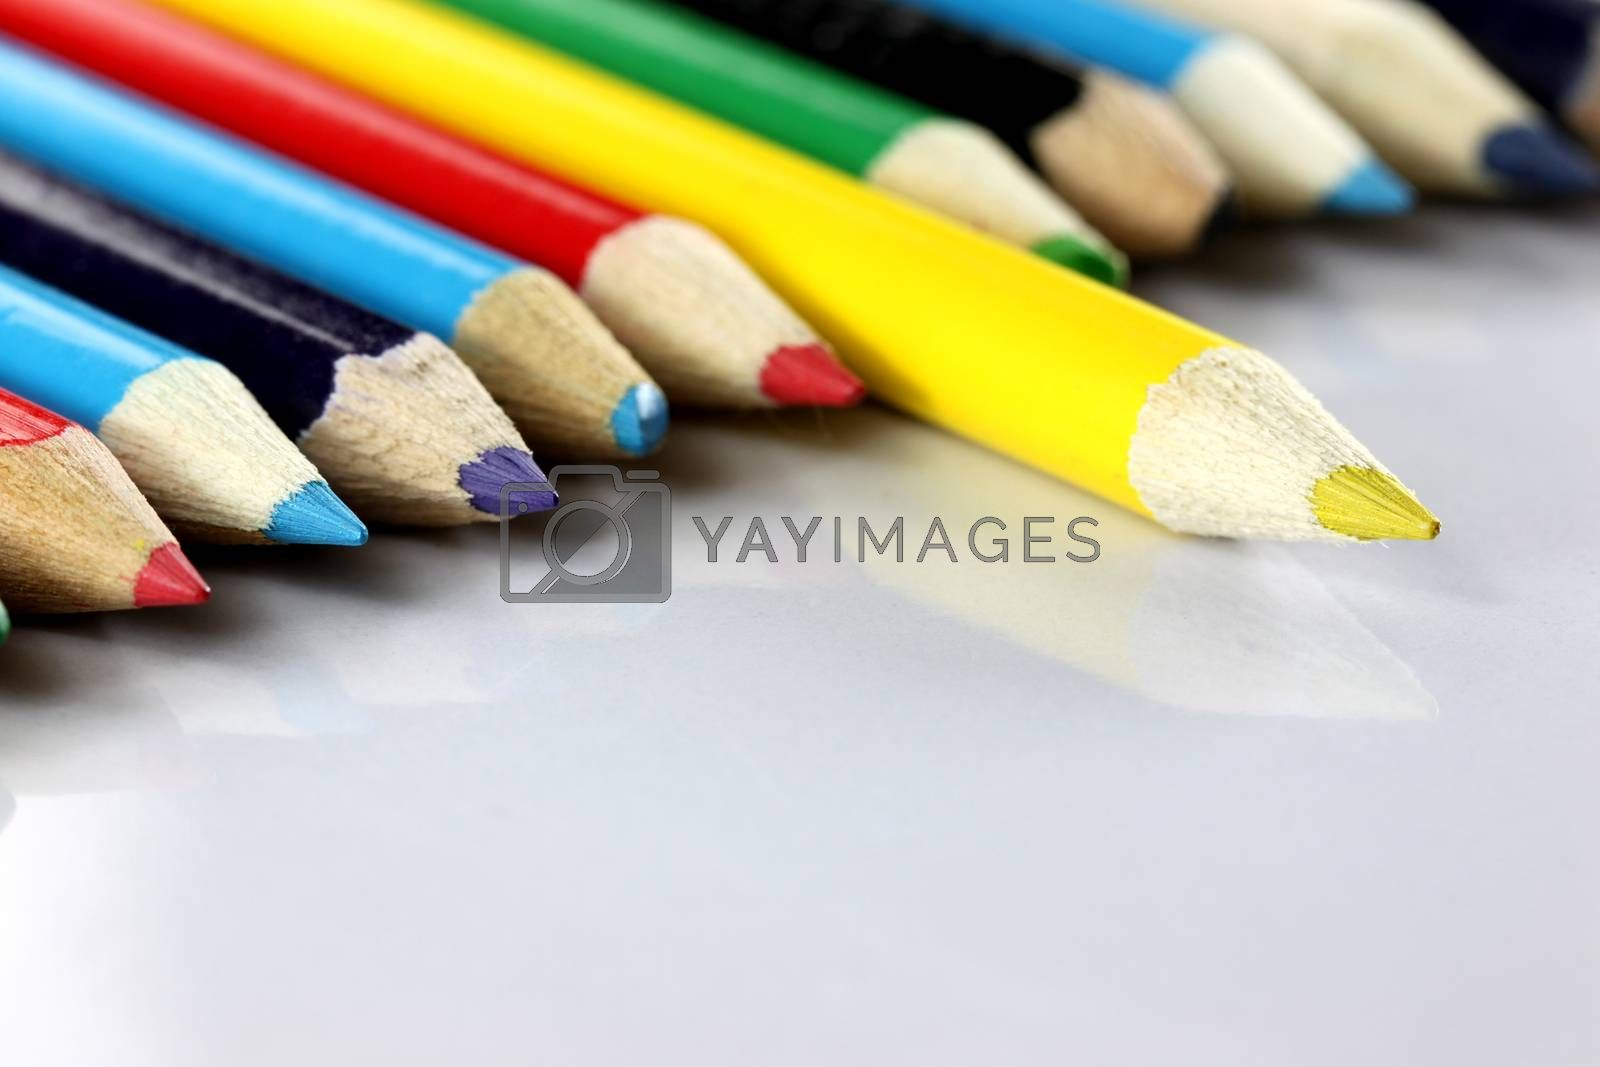 Several colored of crayon is arranged on white. by PiyaPhoto